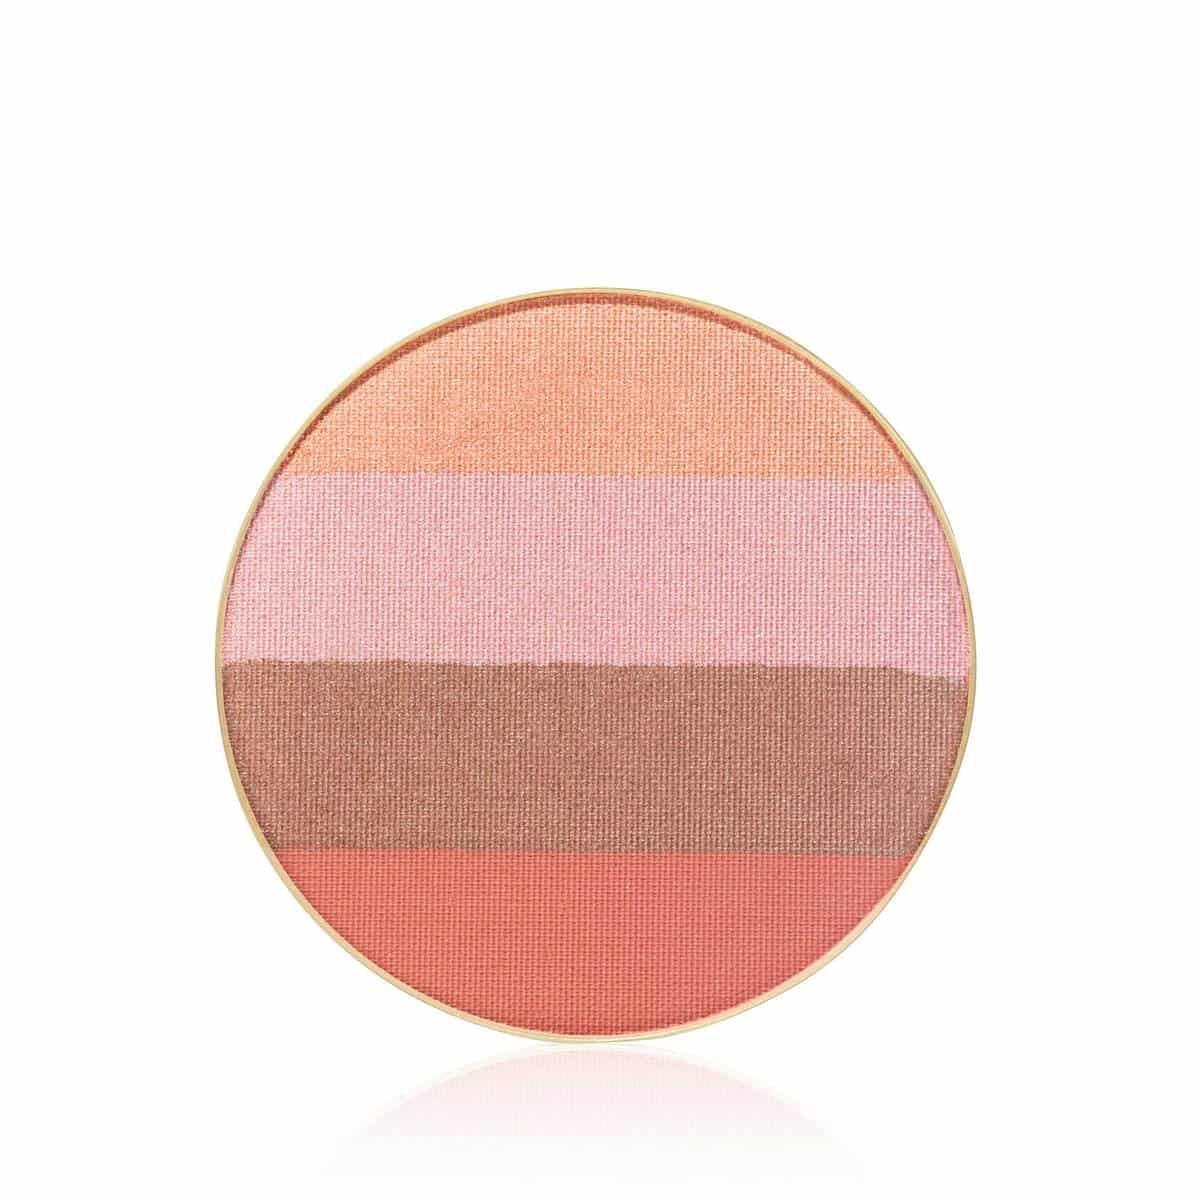 Peaches & Cream Bronzer Refill